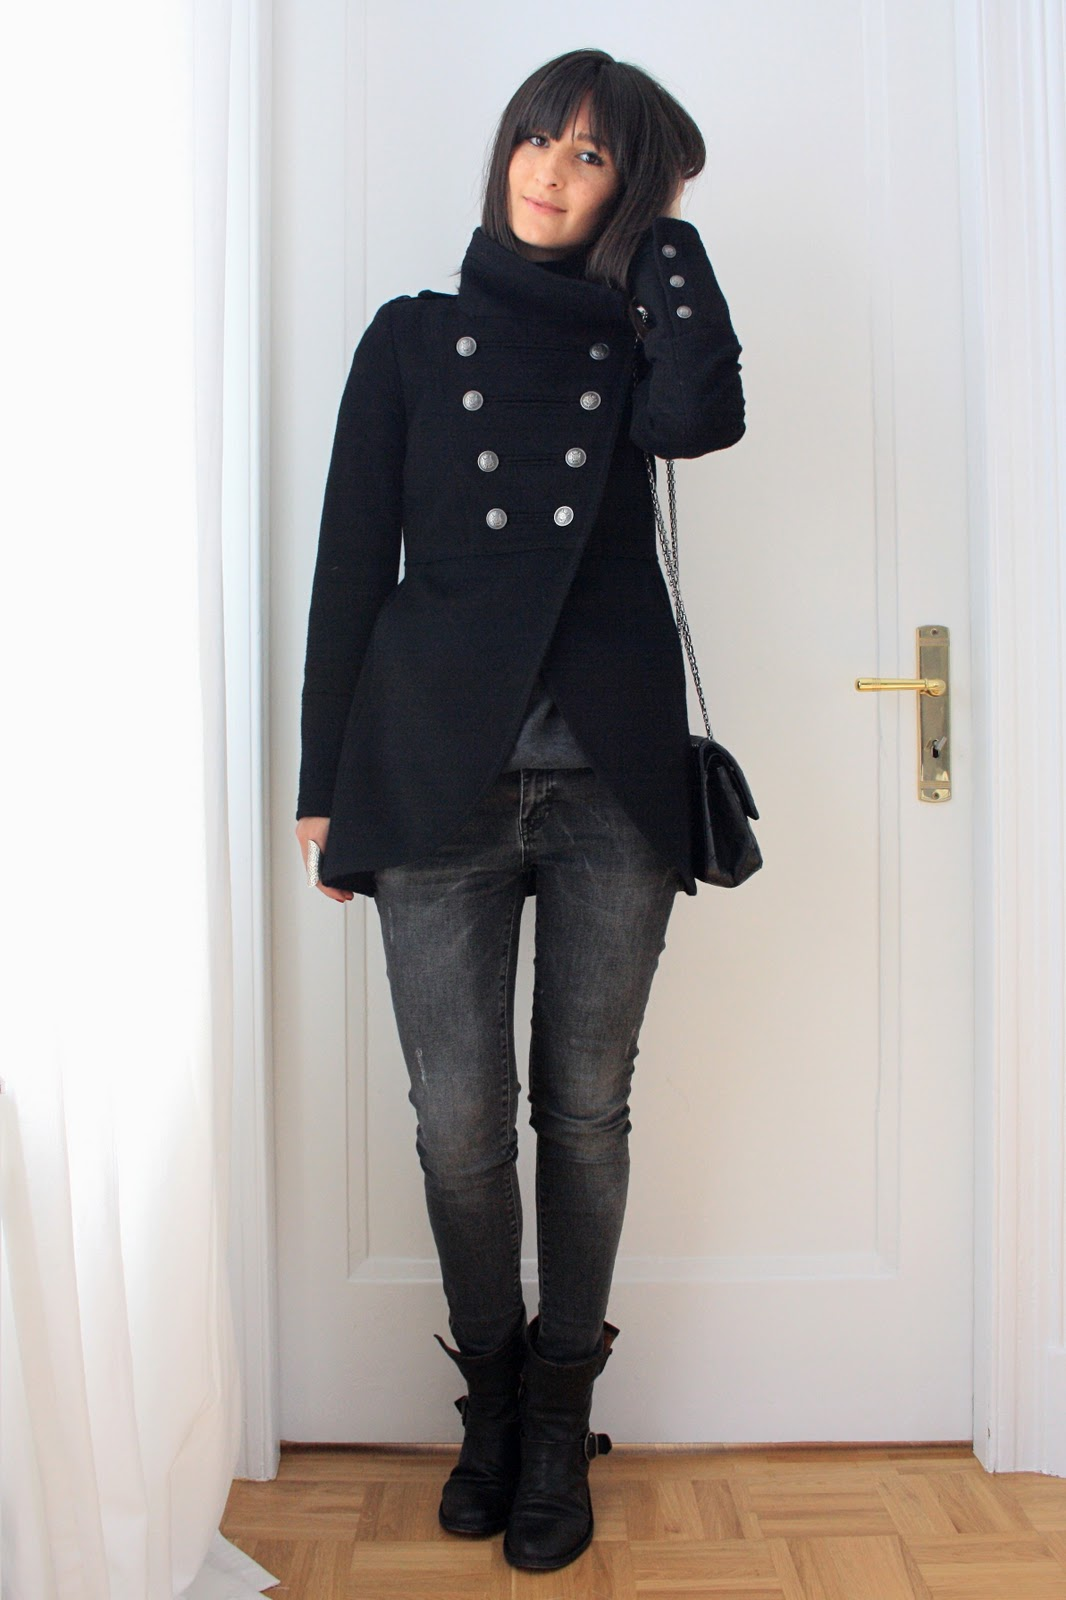 Boots with Skinny Jeans